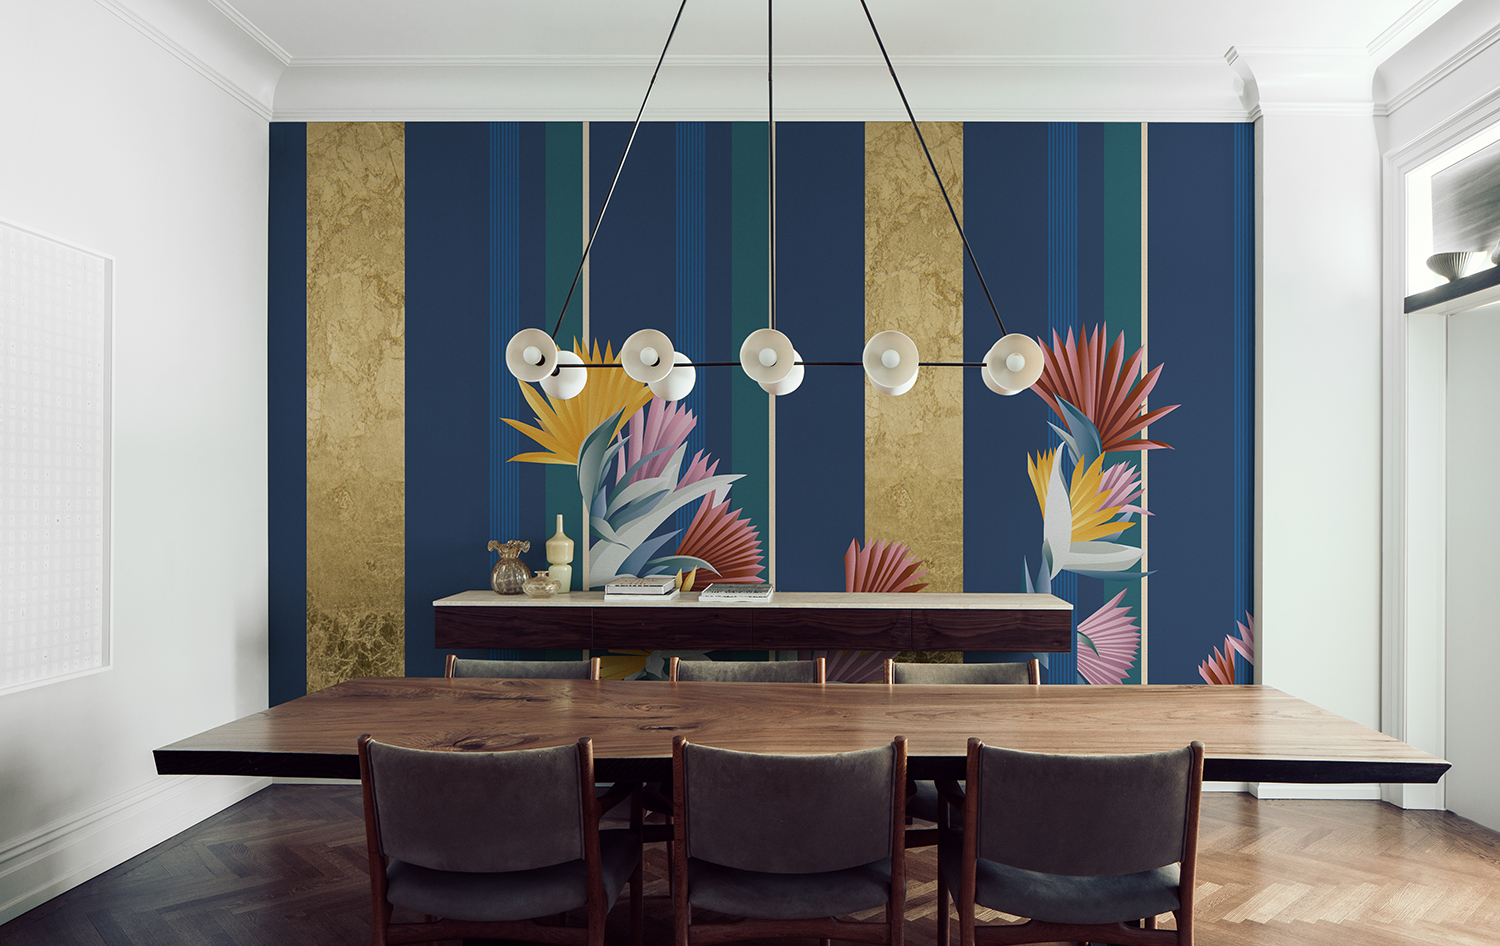 Cabana wallcoverings for dining room in golden sky colour way and metallic